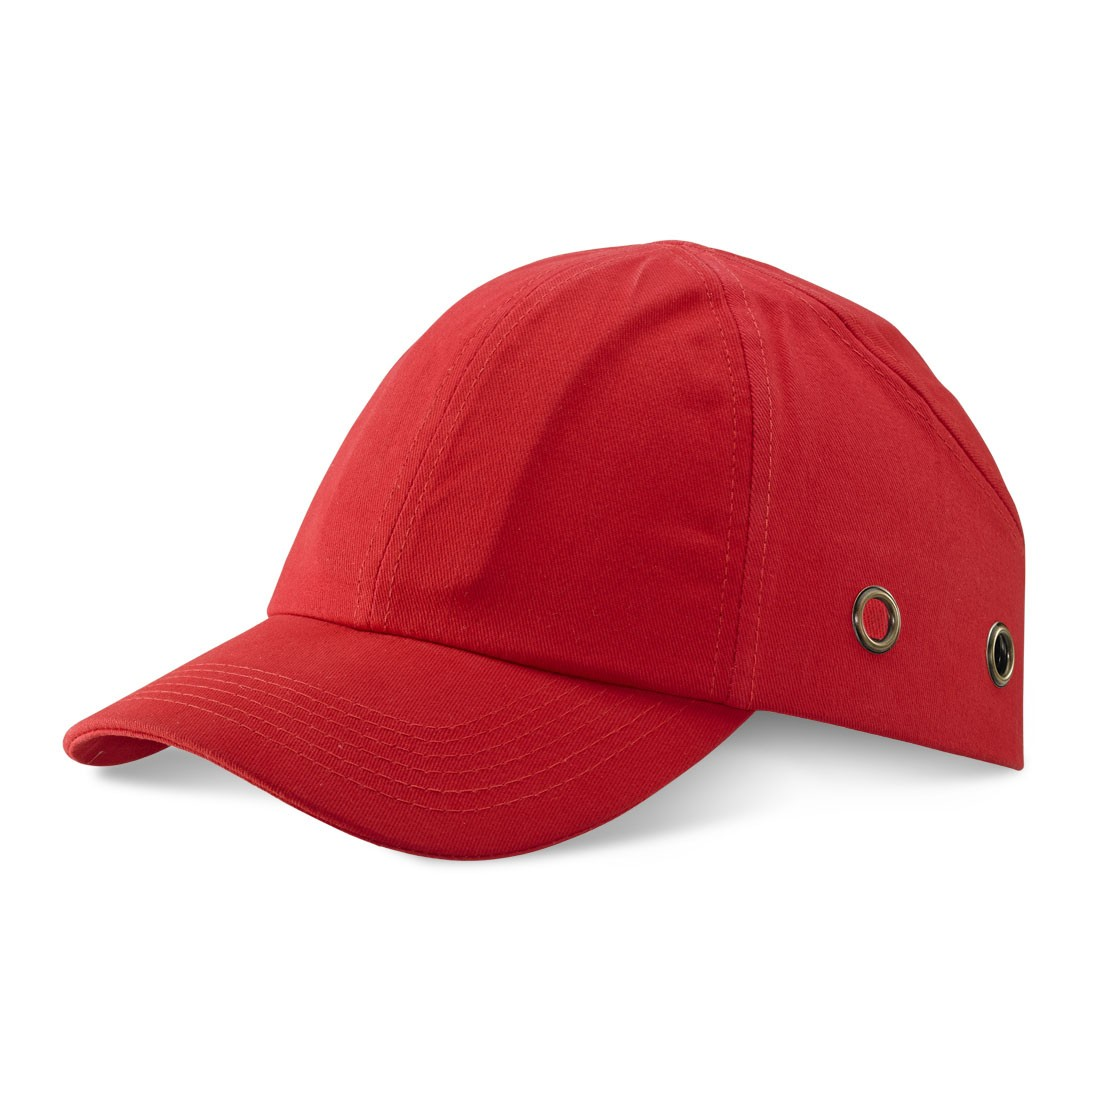 Safety Baseball Style Lightweight ABS Red Bump Cap with Side Ventalation